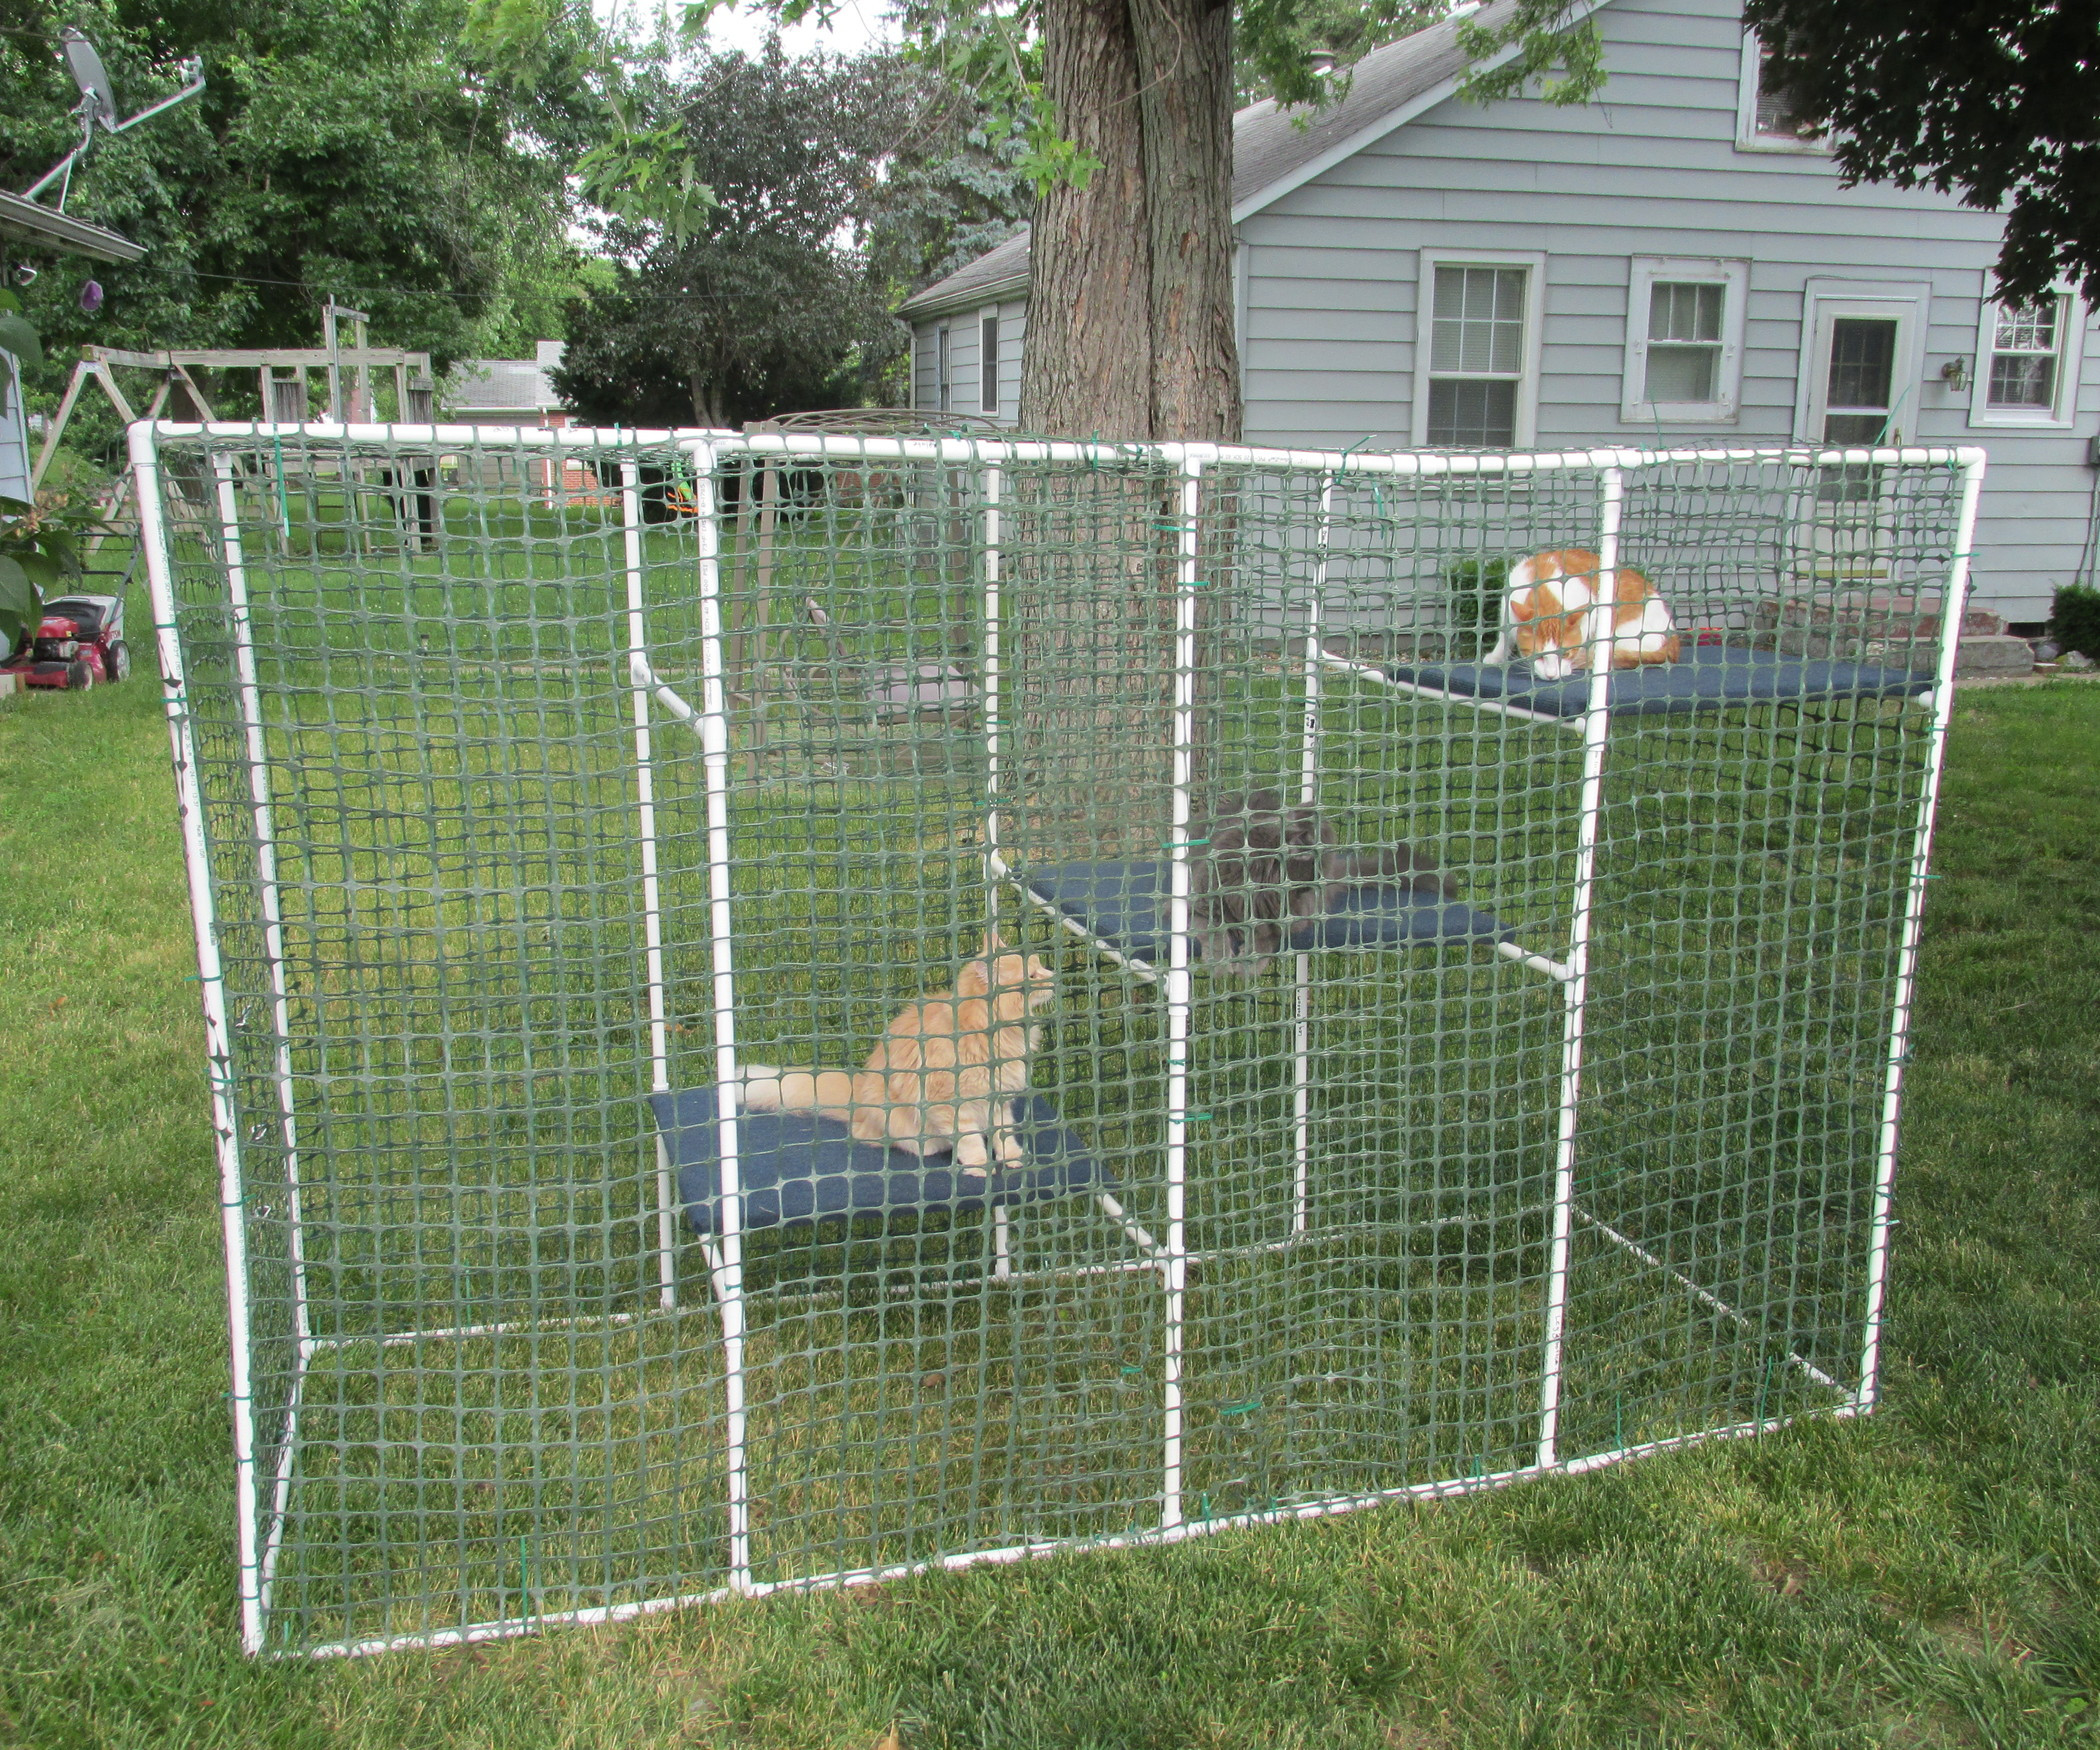 Best ideas about Cat Enclosure DIY . Save or Pin Cat Enclosure Now.